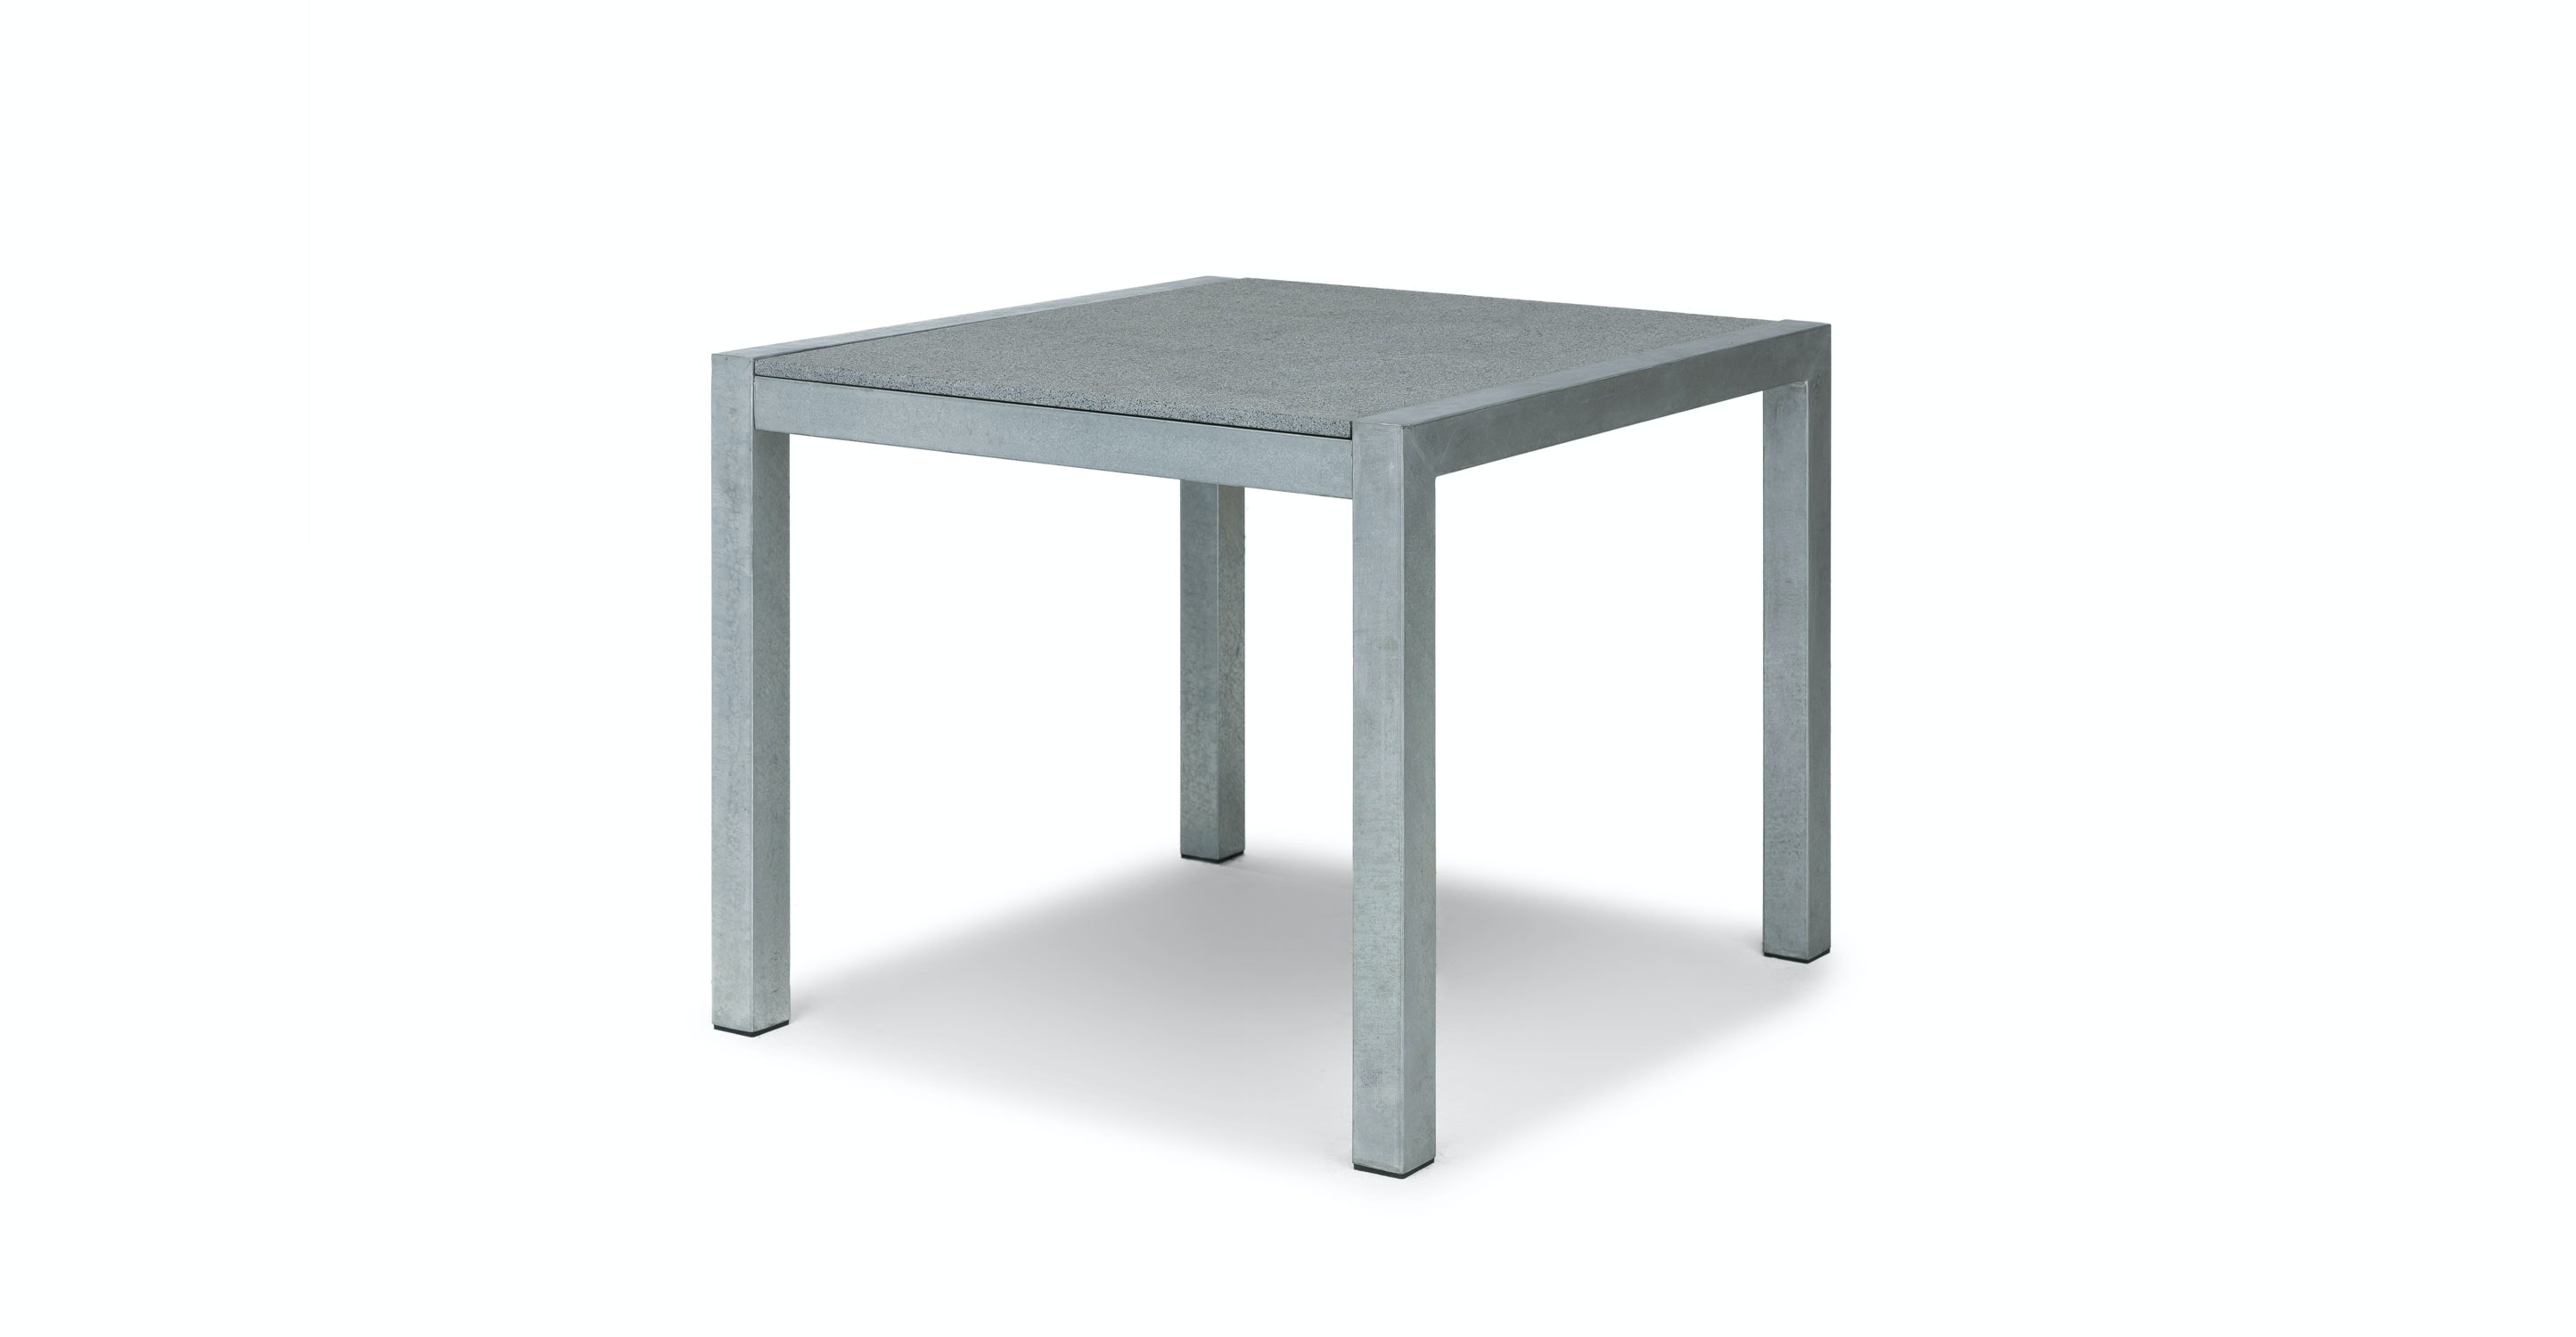 Nebula Granite Dining Table For 4 Article